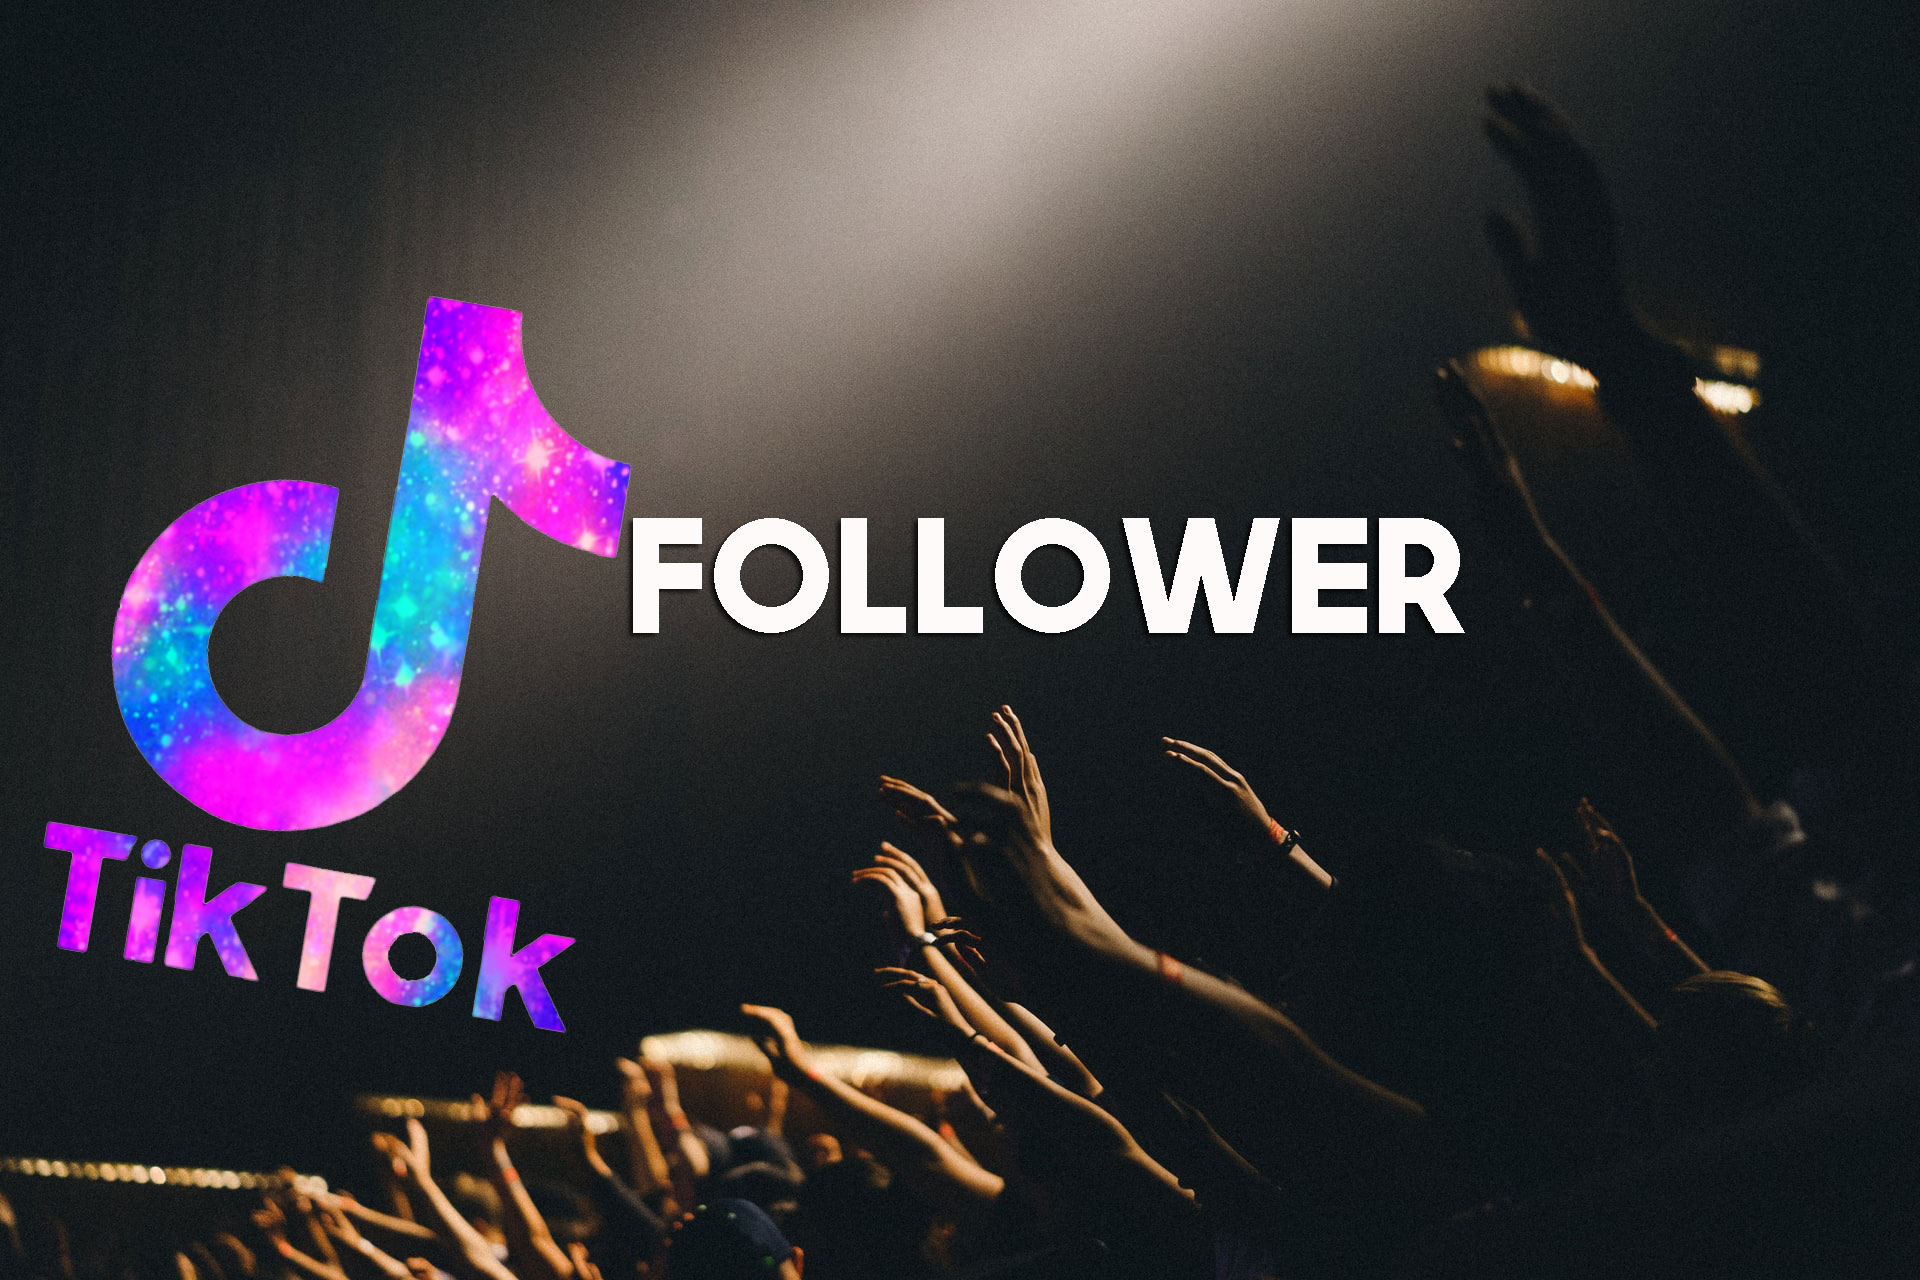 What's the Fastest Way to Get 10,000 TikTok Followers?